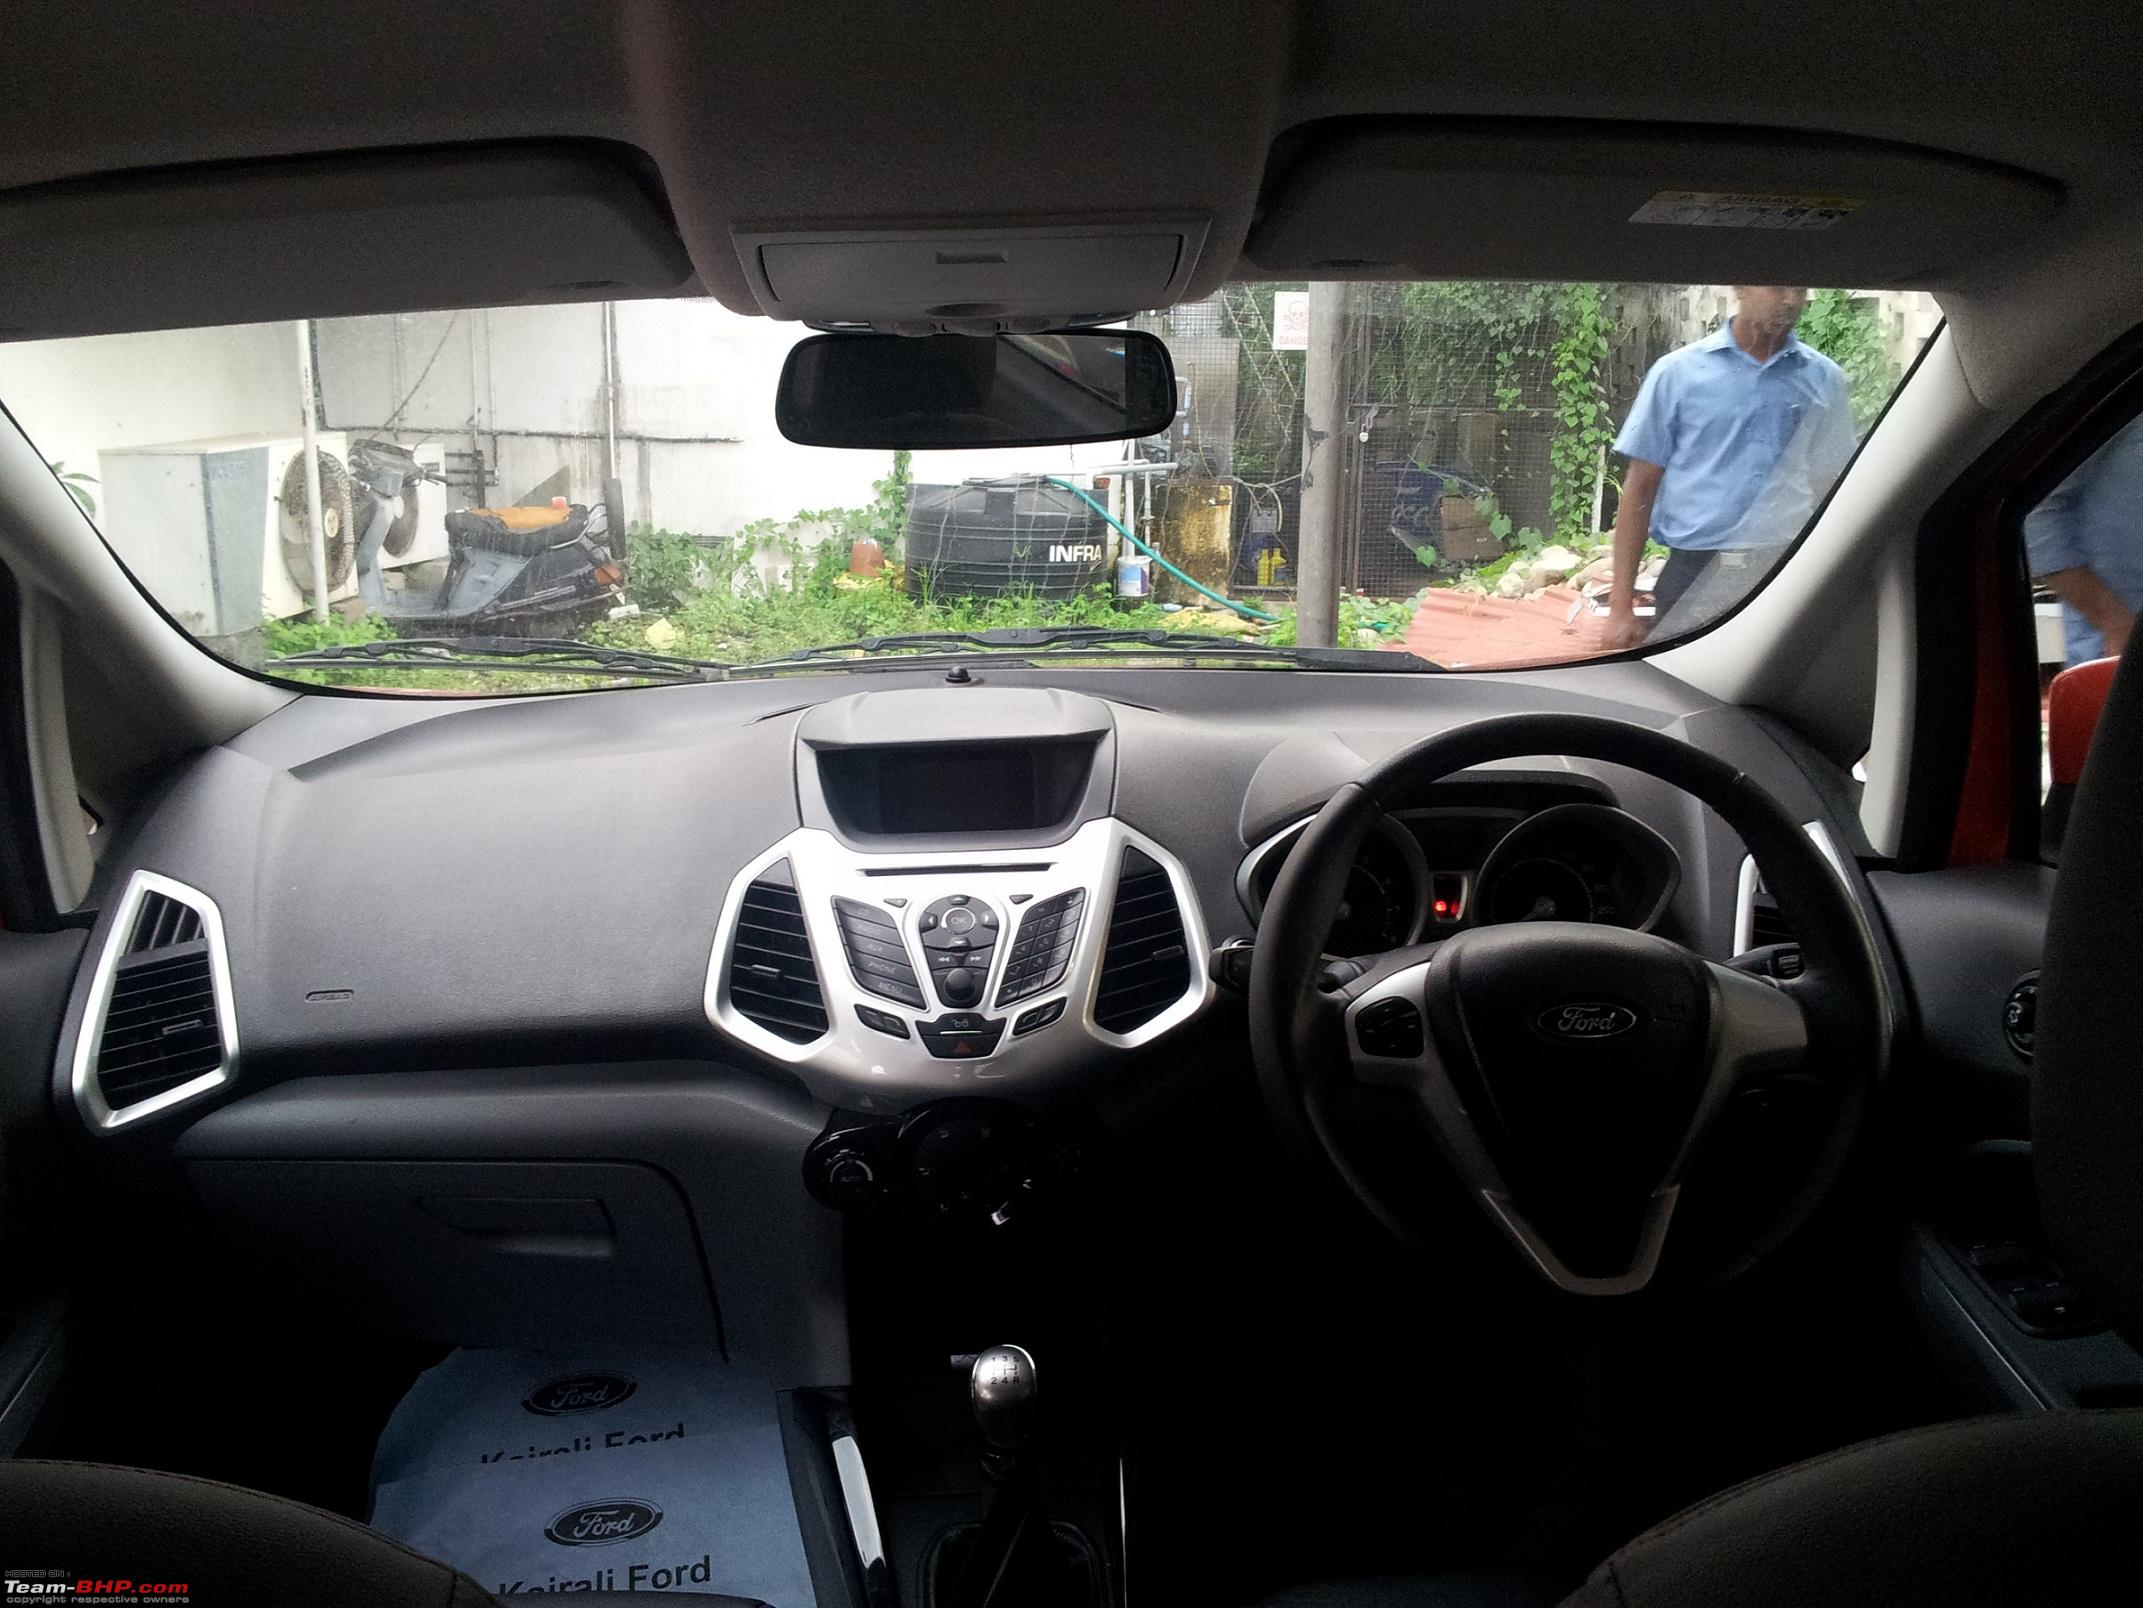 Ford ecosport official review 20130614_175955 jpg